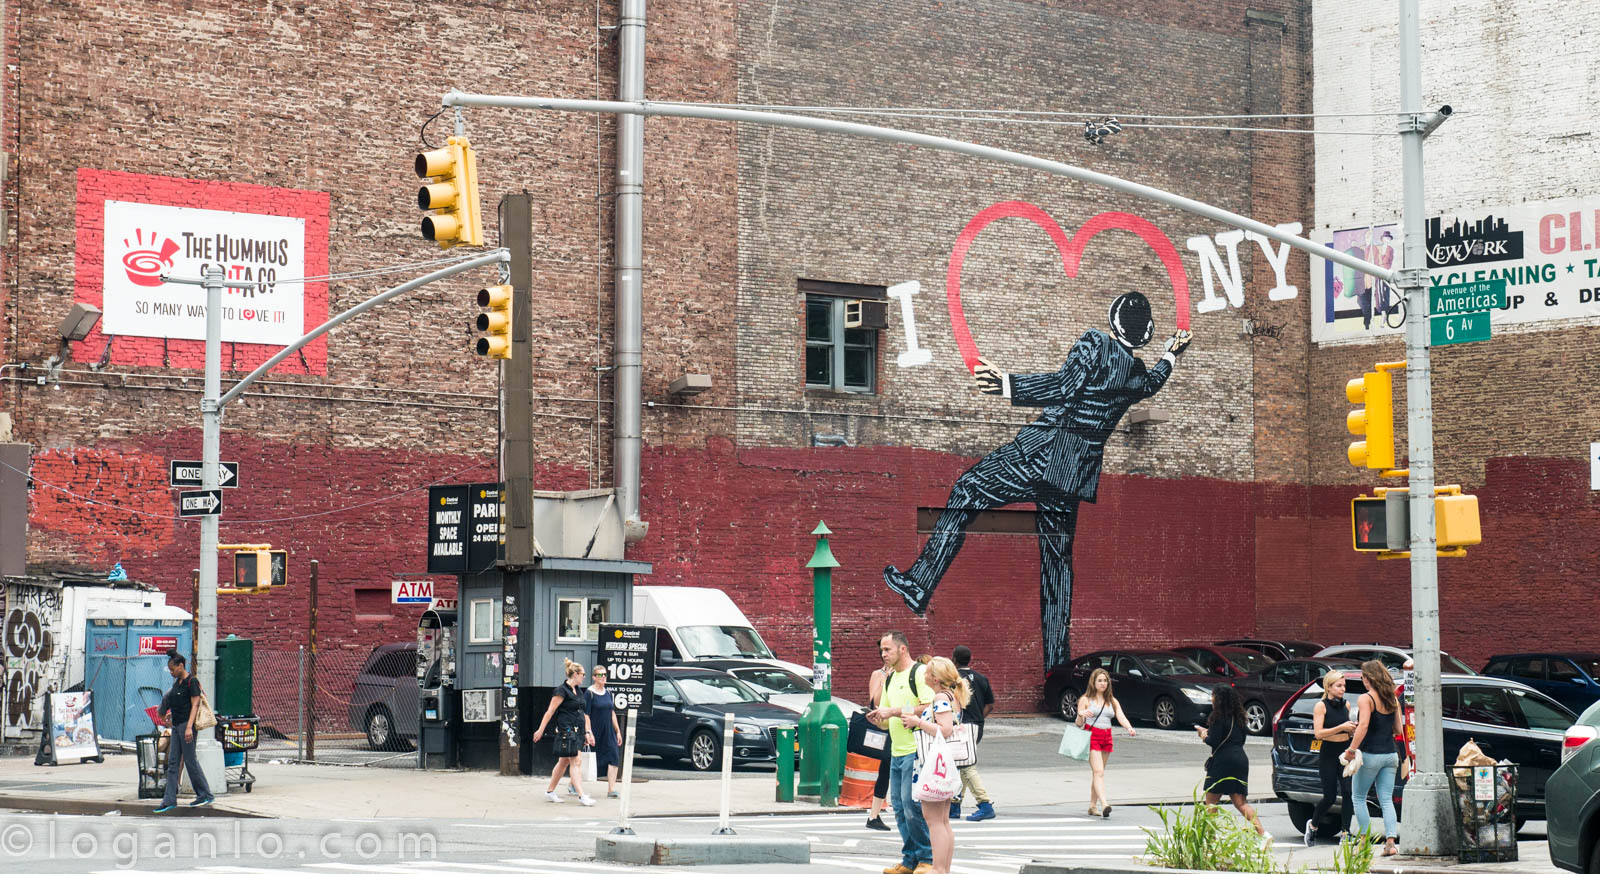 Heart Graffiti in New York City